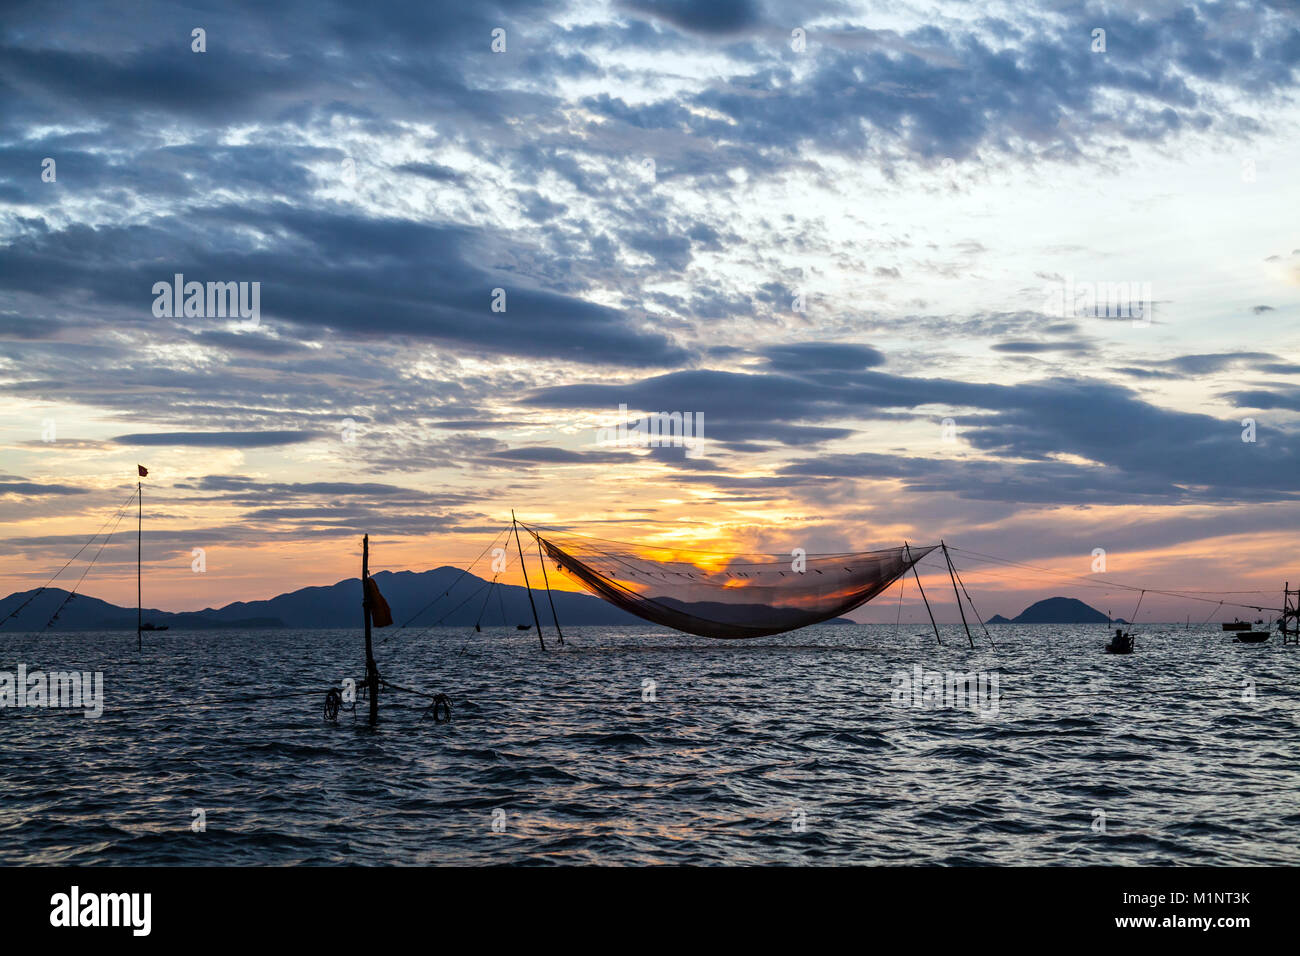 Sunrise over a traditional hanging fishing net in the sea, at the entrance to Thu Bon River, near Hoi An, Vietnam - Stock Image